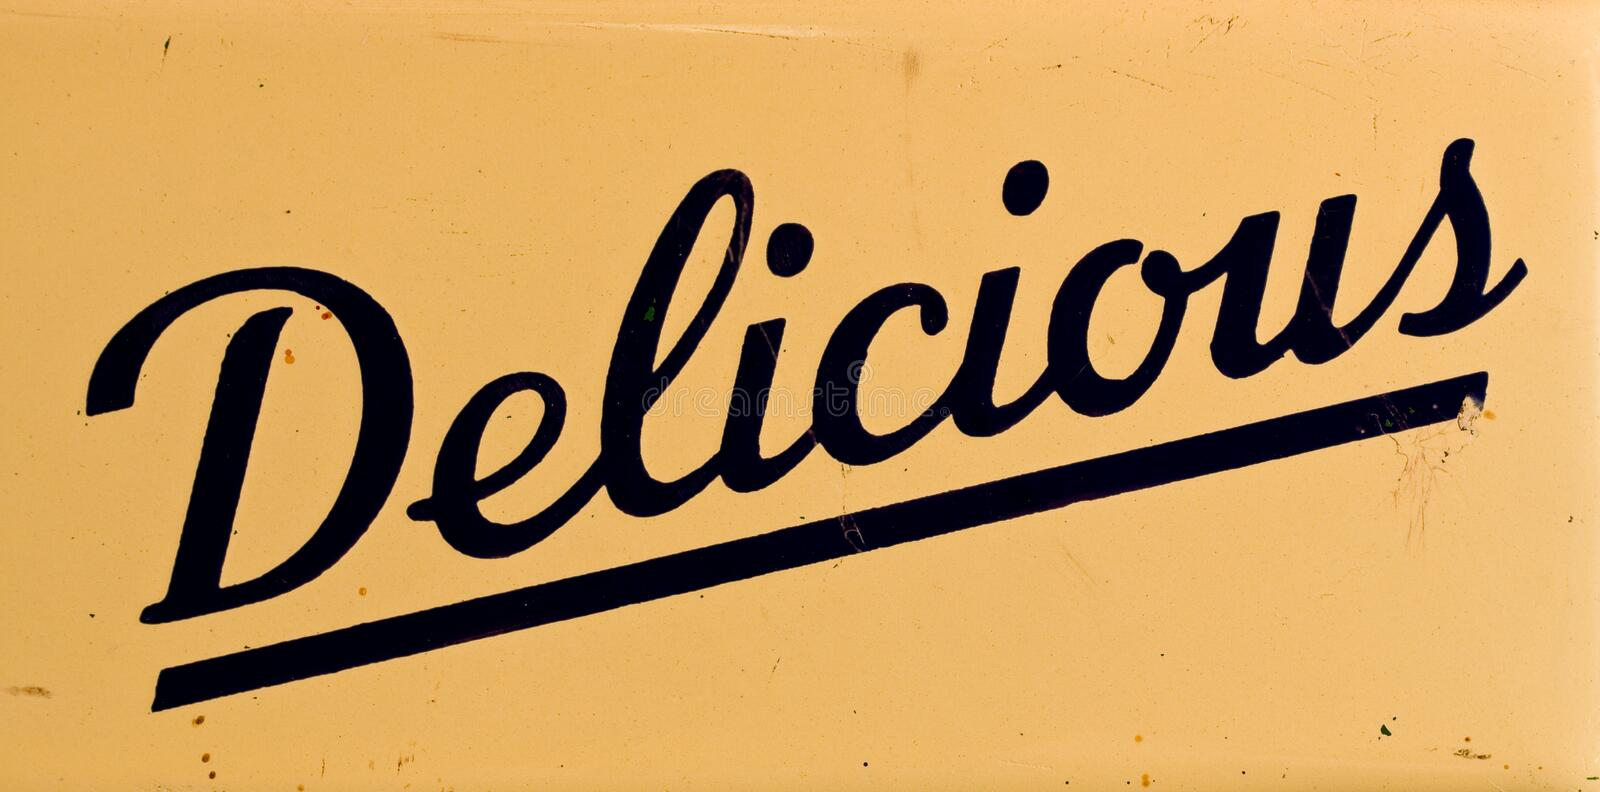 Download Delicious stock image. Image of word, delicious, eatery - 15218421